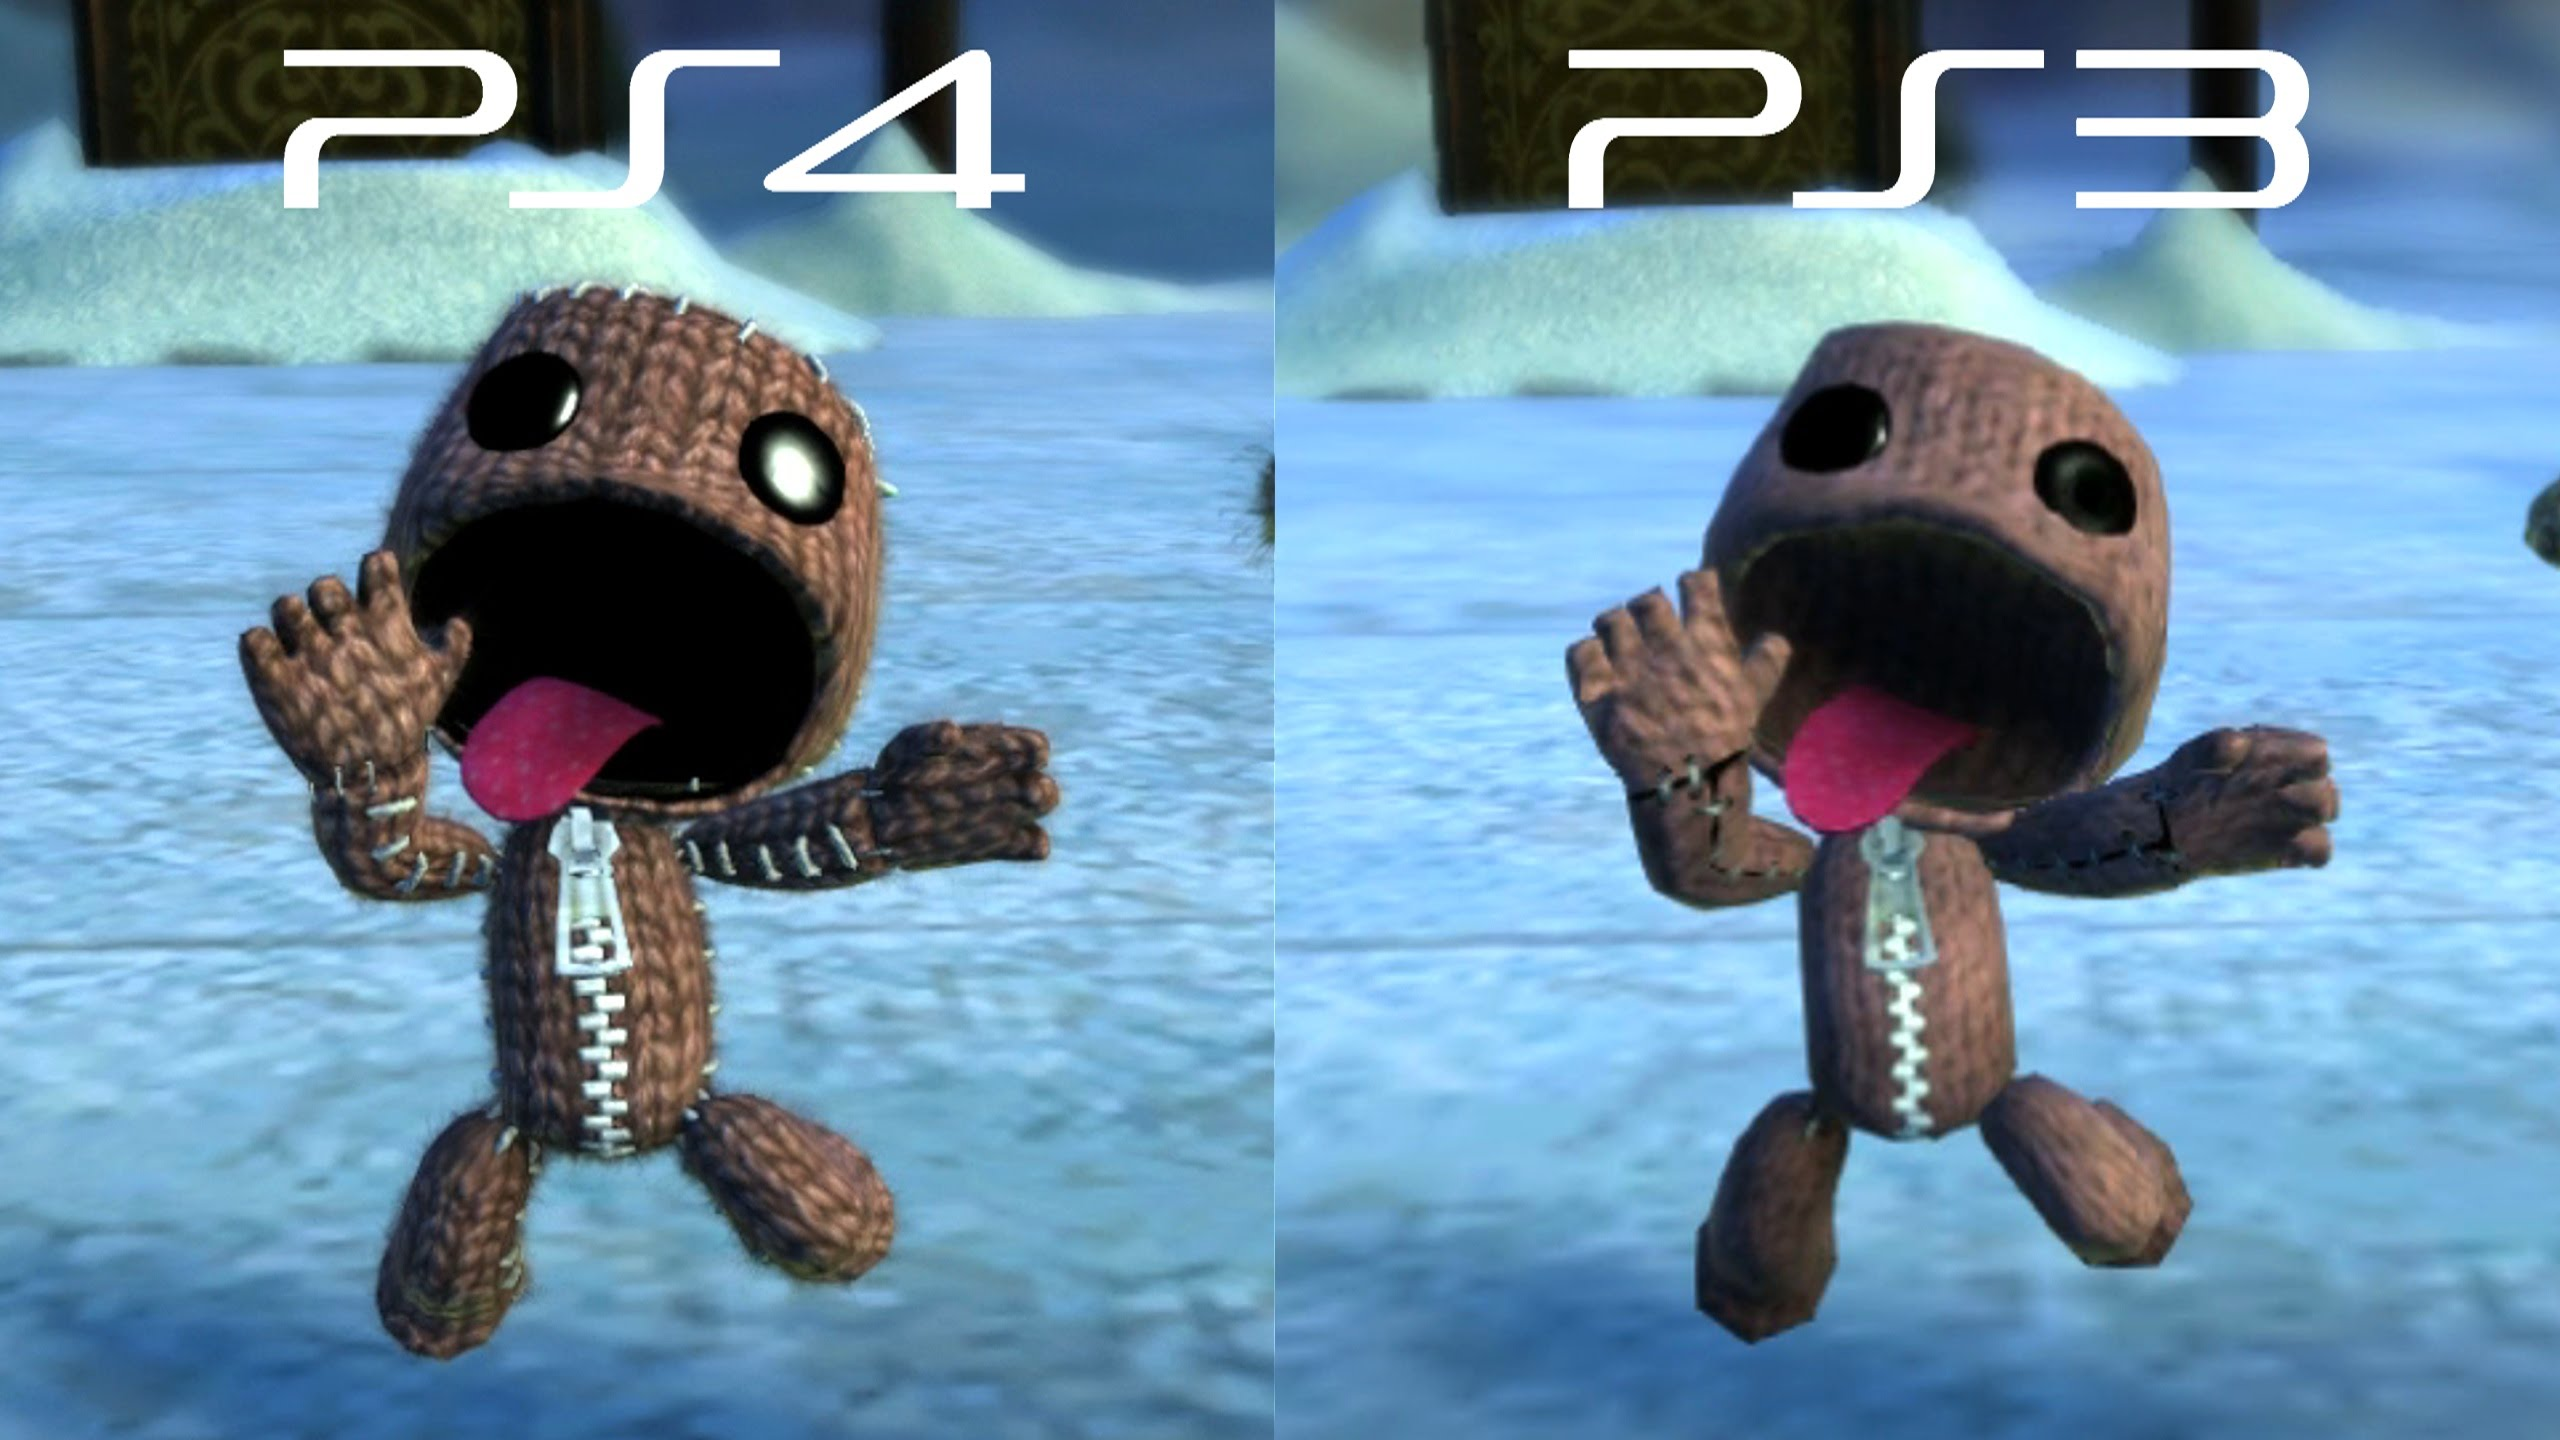 LittleBigPlanet 3 PlayStation 3 vs. PlayStation 4 Version